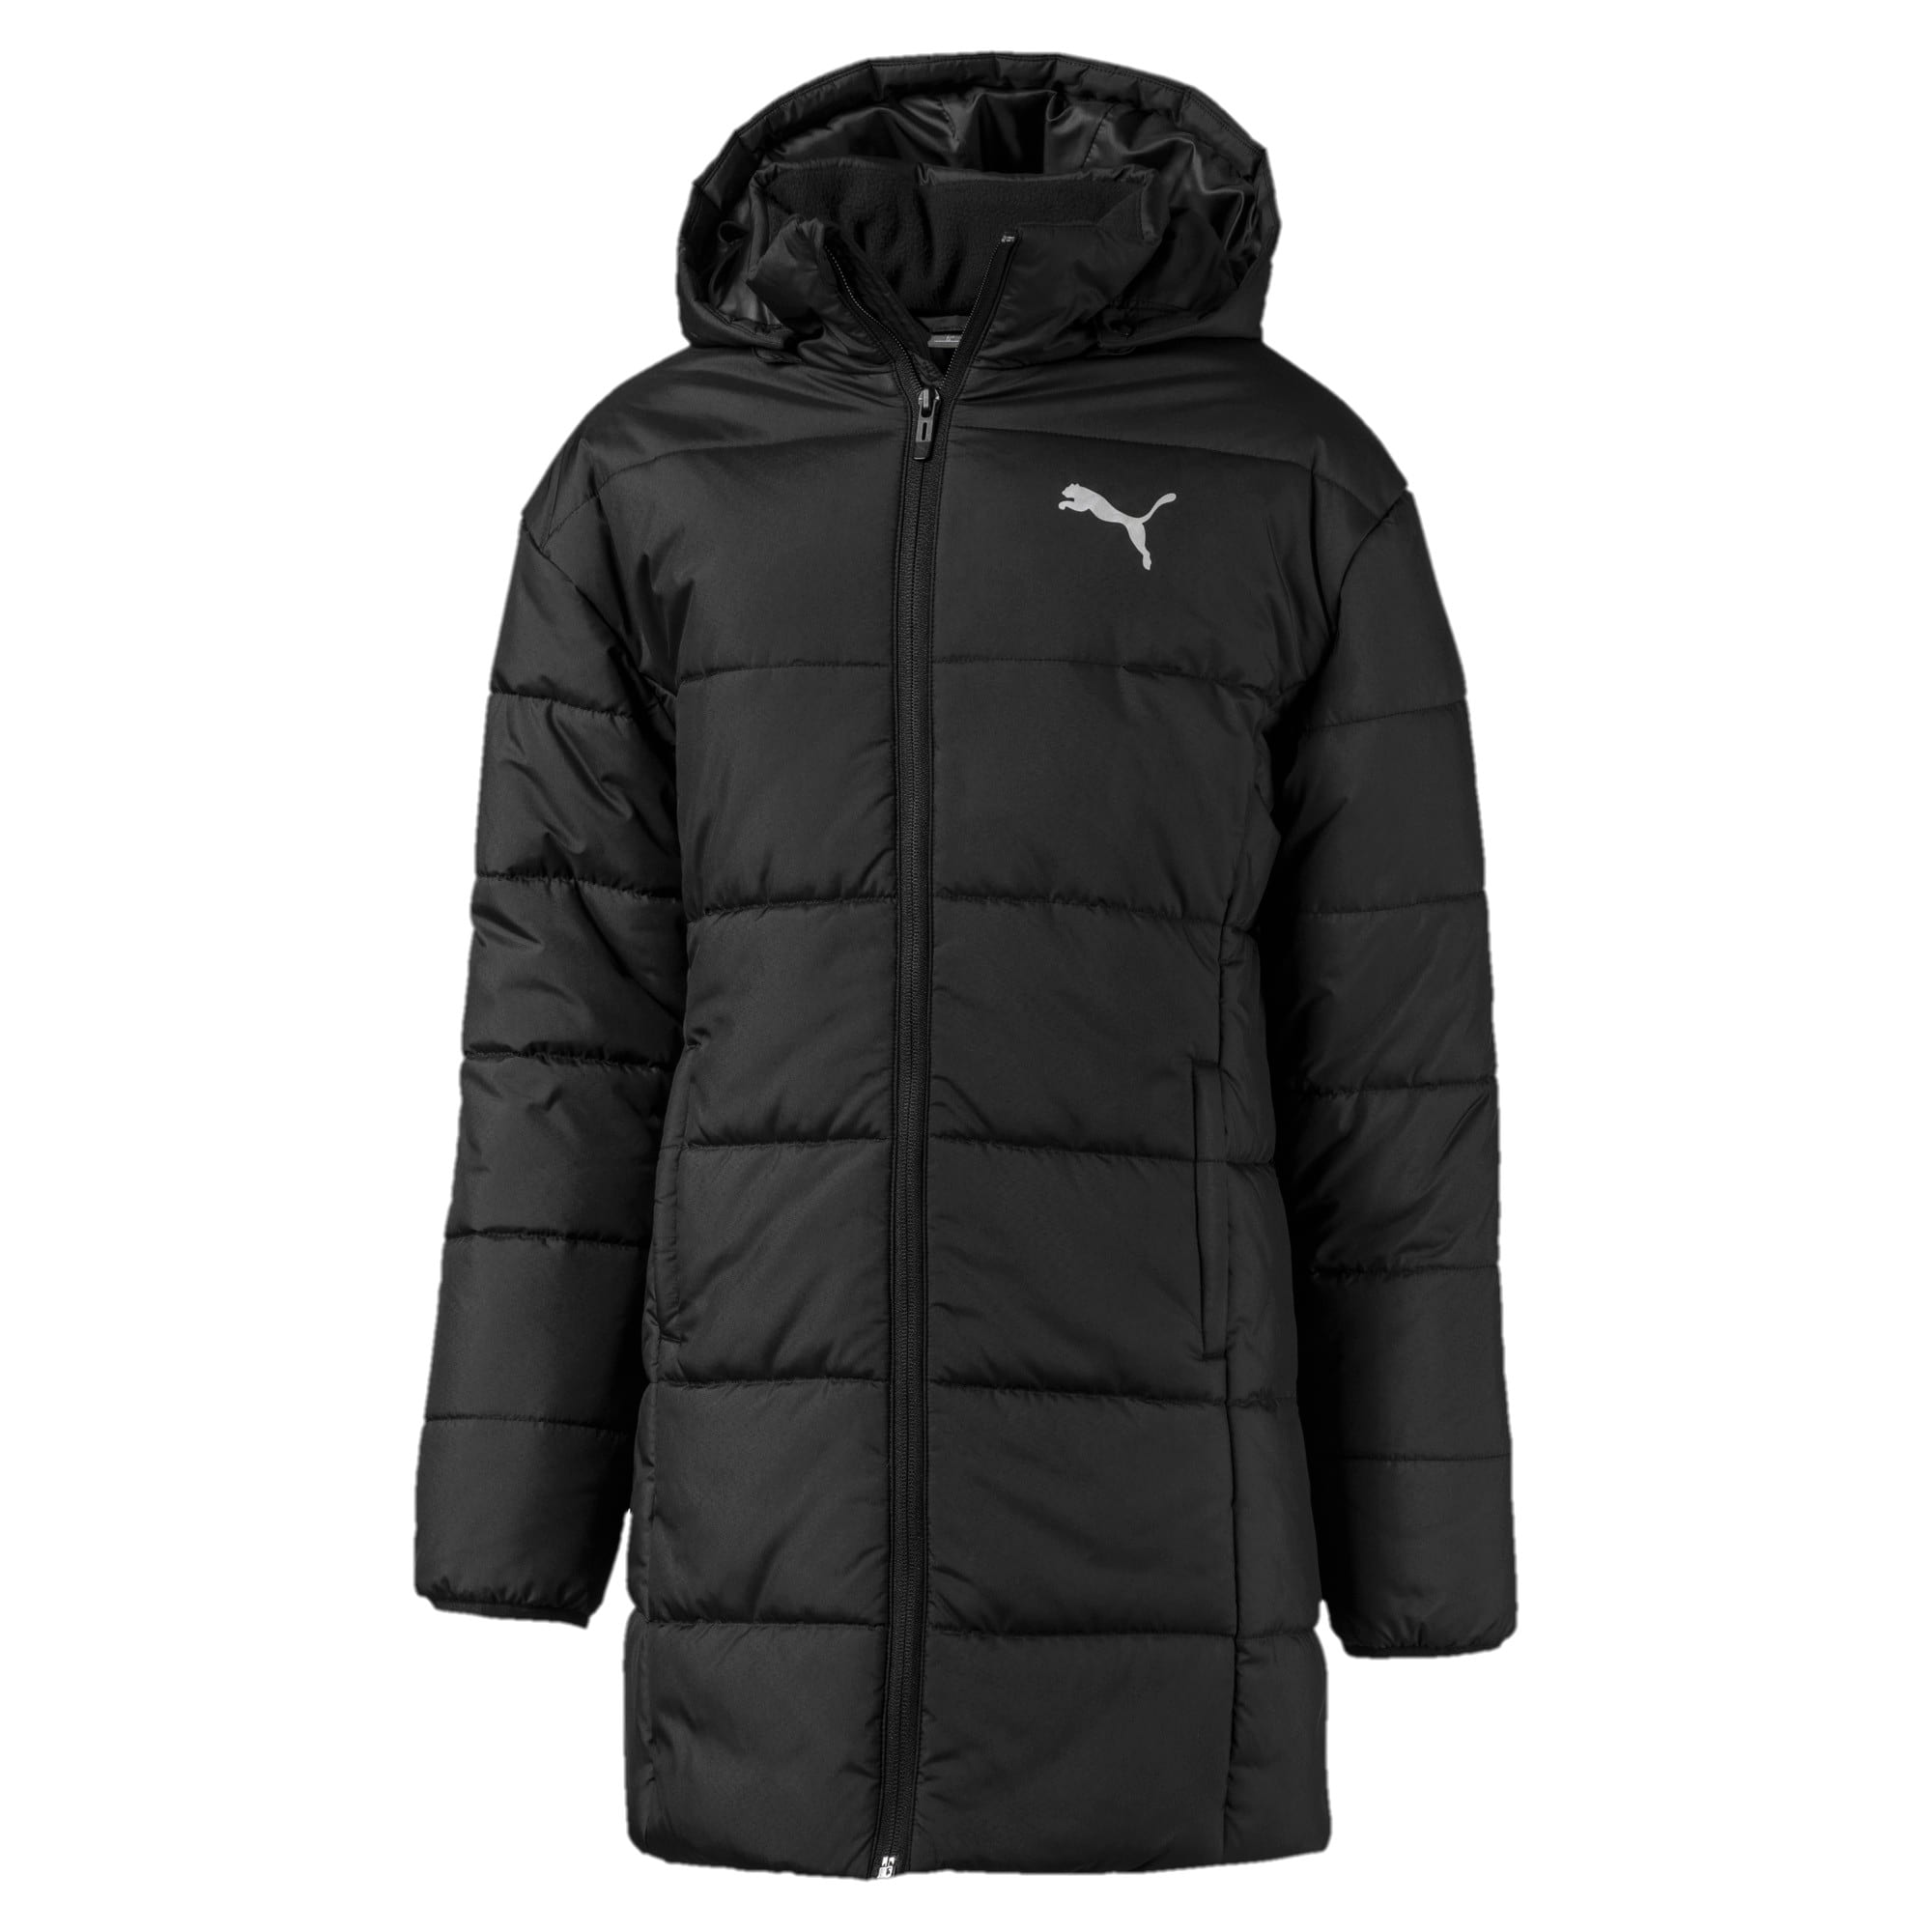 Thumbnail 1 of Hooded Girls' Padded Jacket, Puma Black, medium